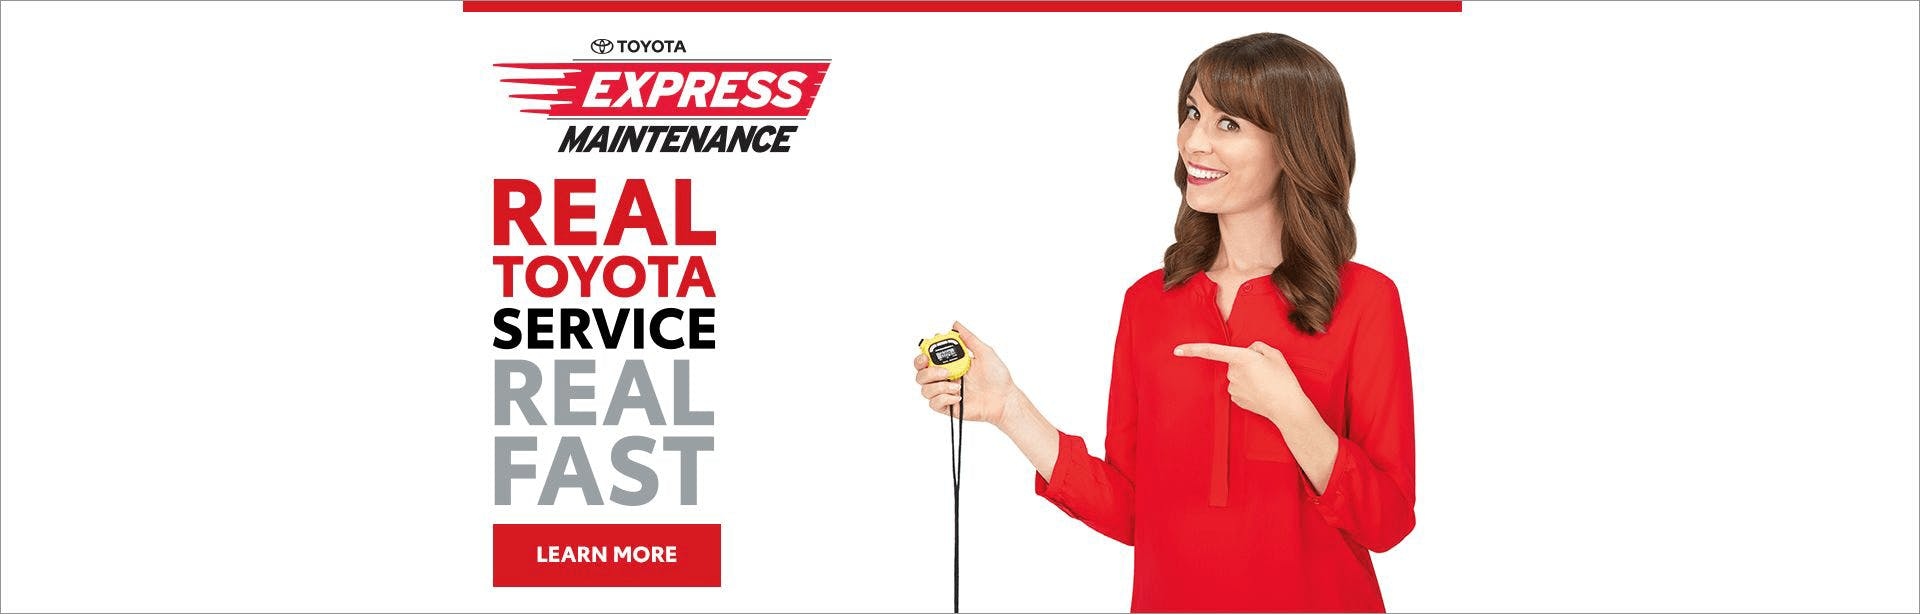 toyota express maintenance - banner - south hills toyota